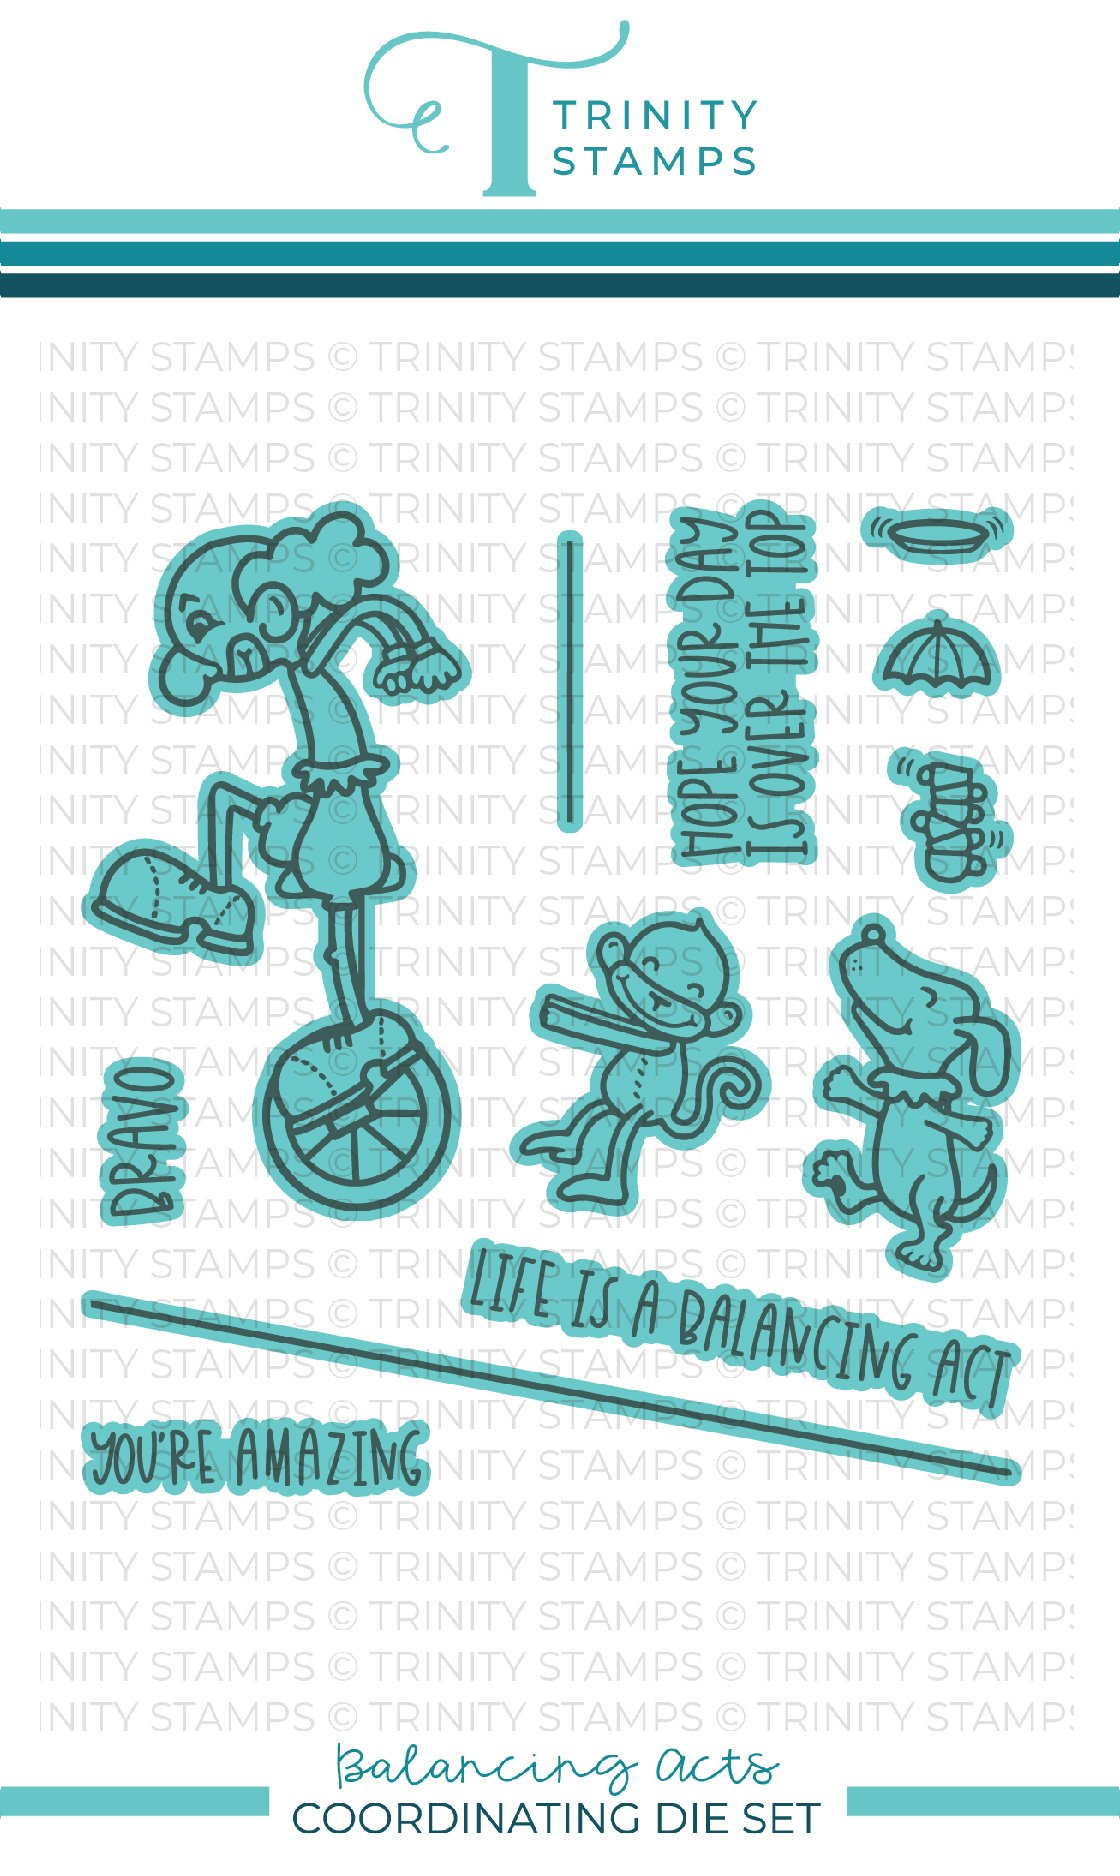 *NEW* - Trinity Stamps - Balancing Acts coordinating die set